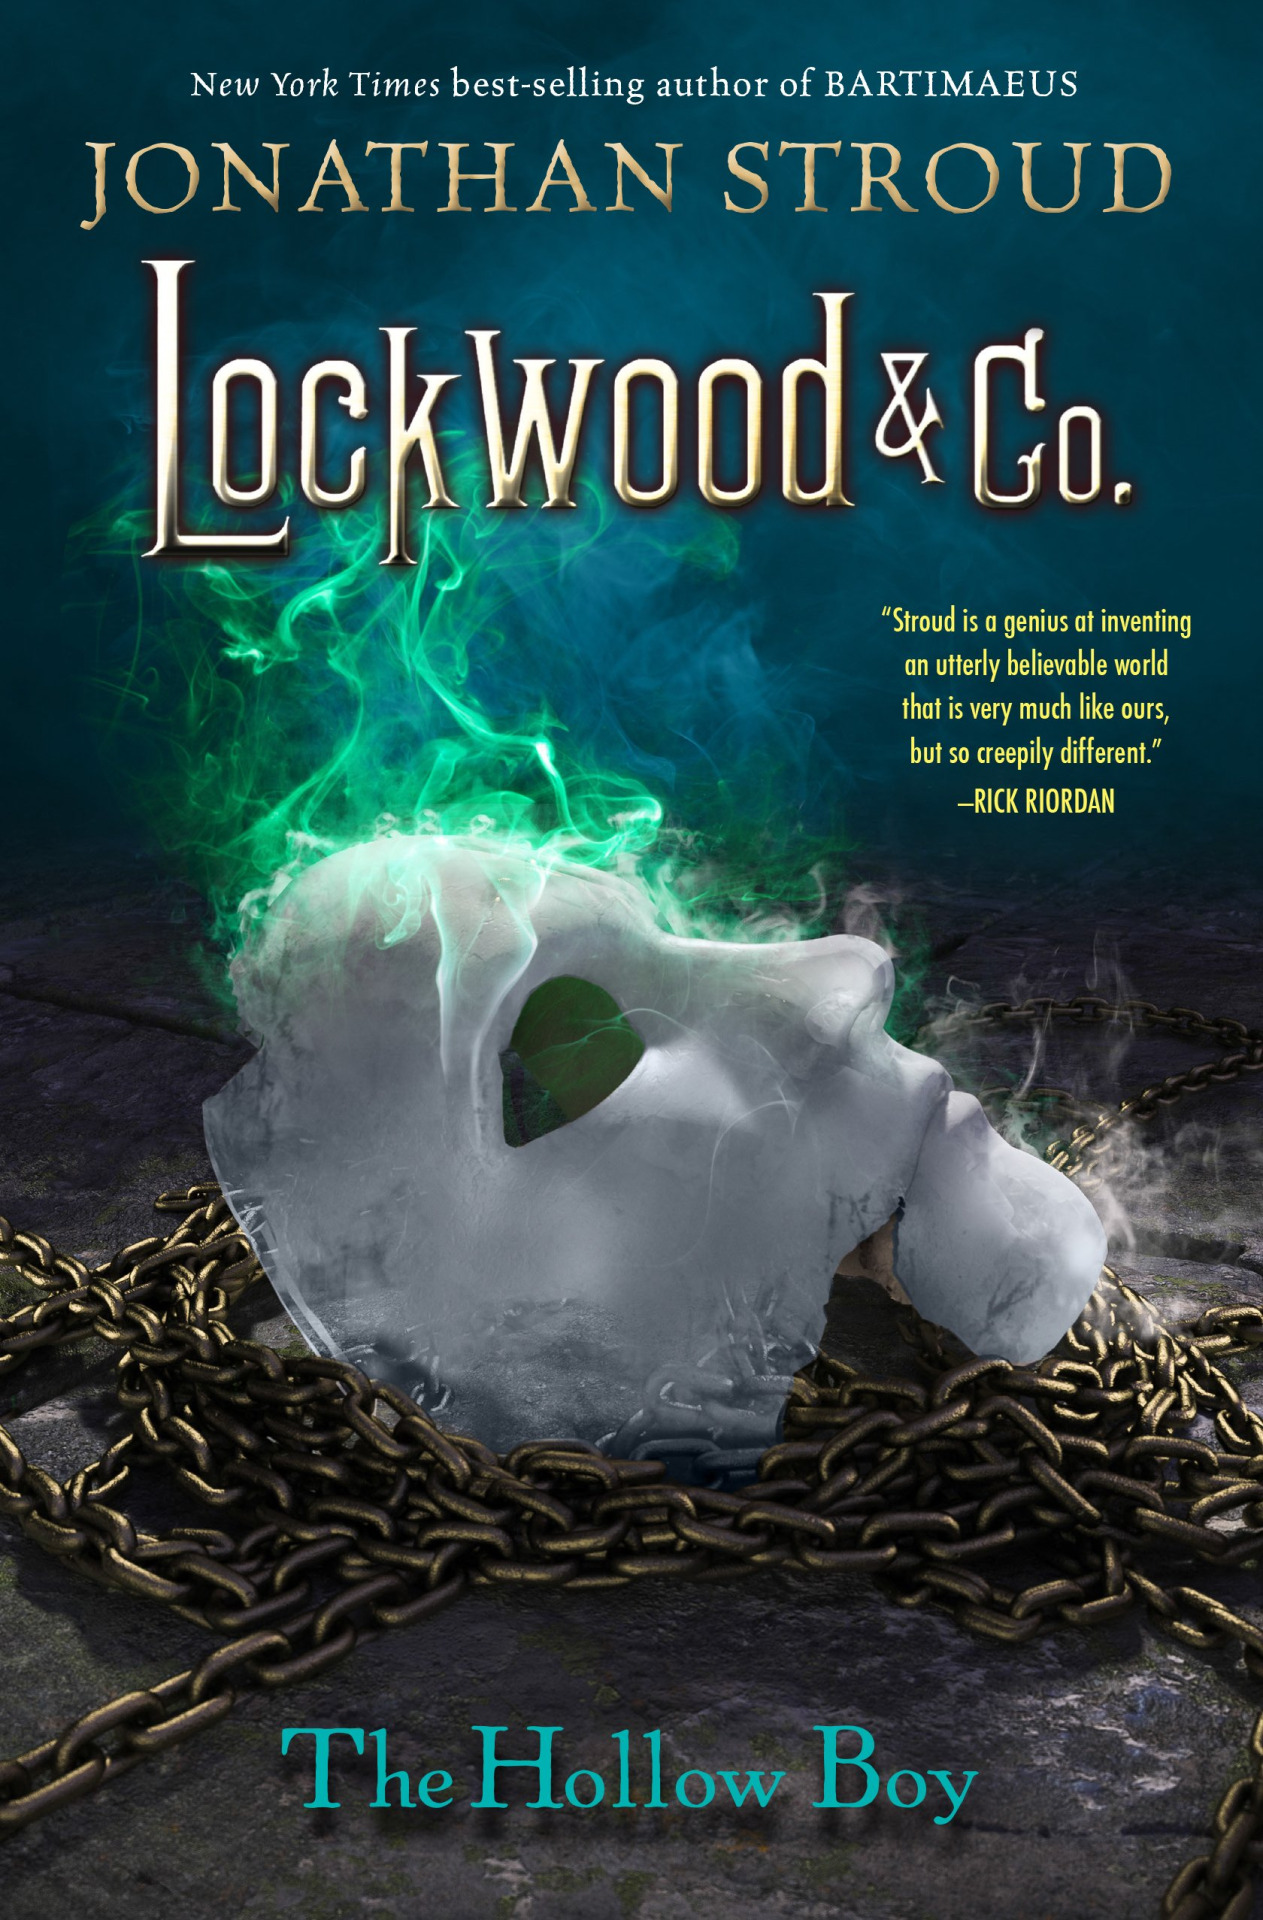 Lockwood & Co.: The Hollow Boy by Jonathan Stroud | SLJ Review